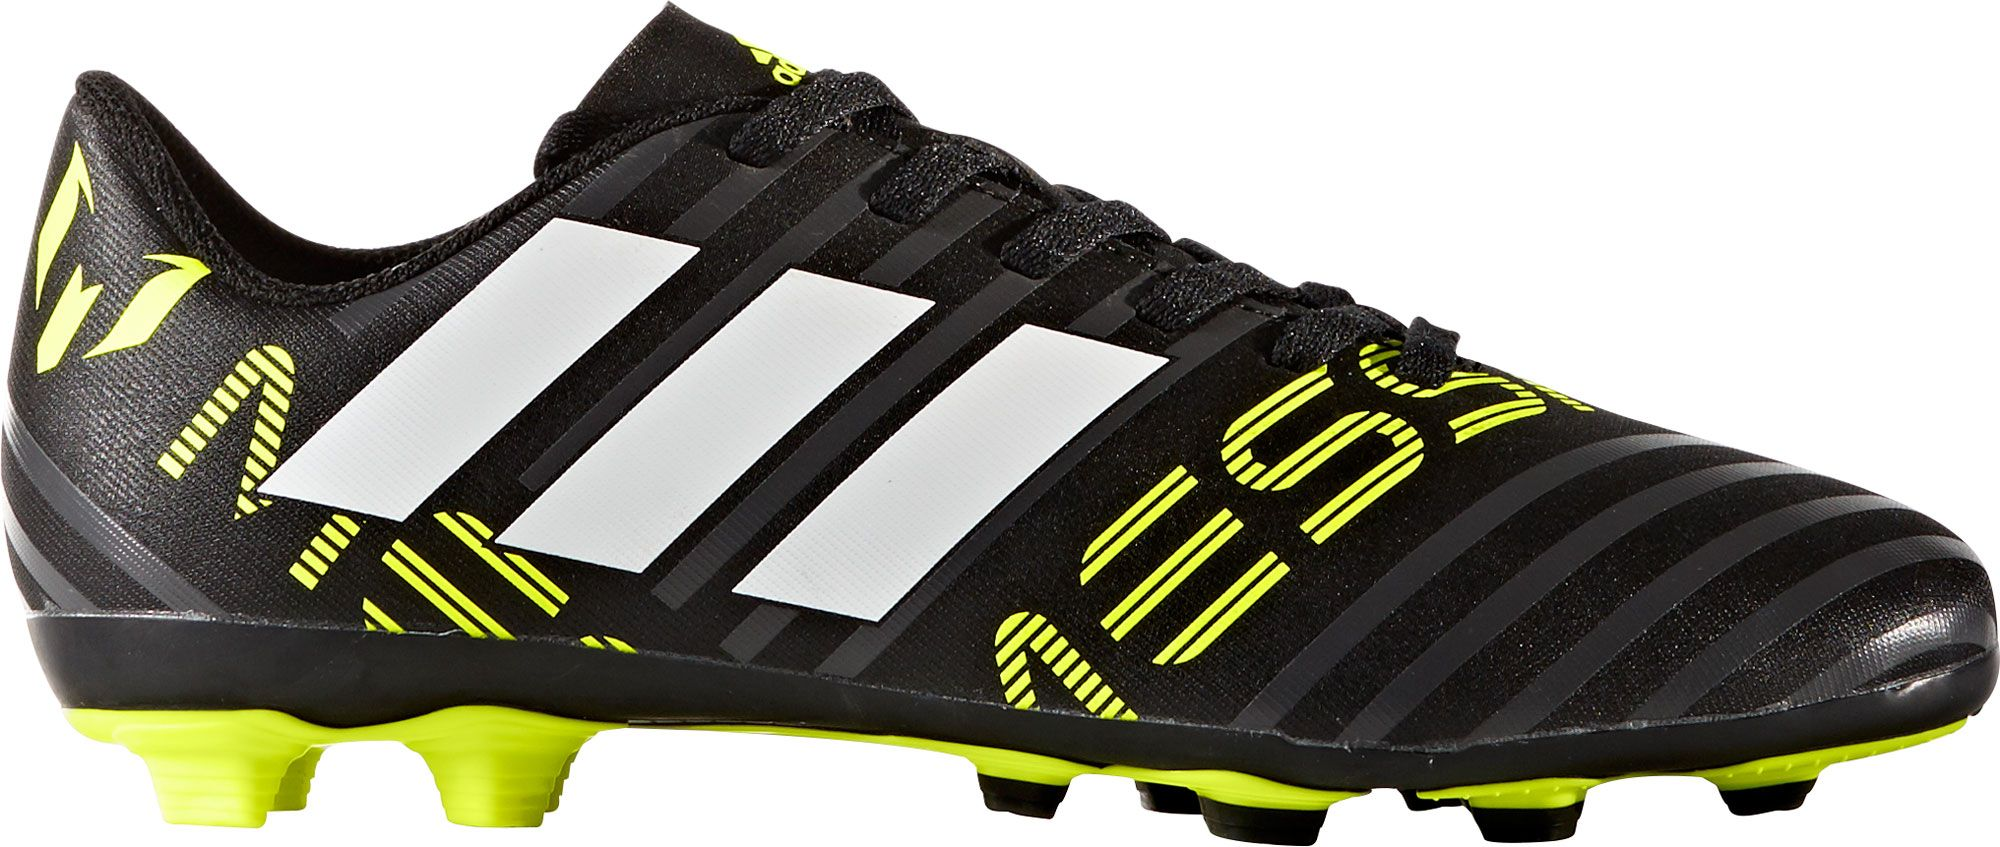 adidas soccer cleats messi